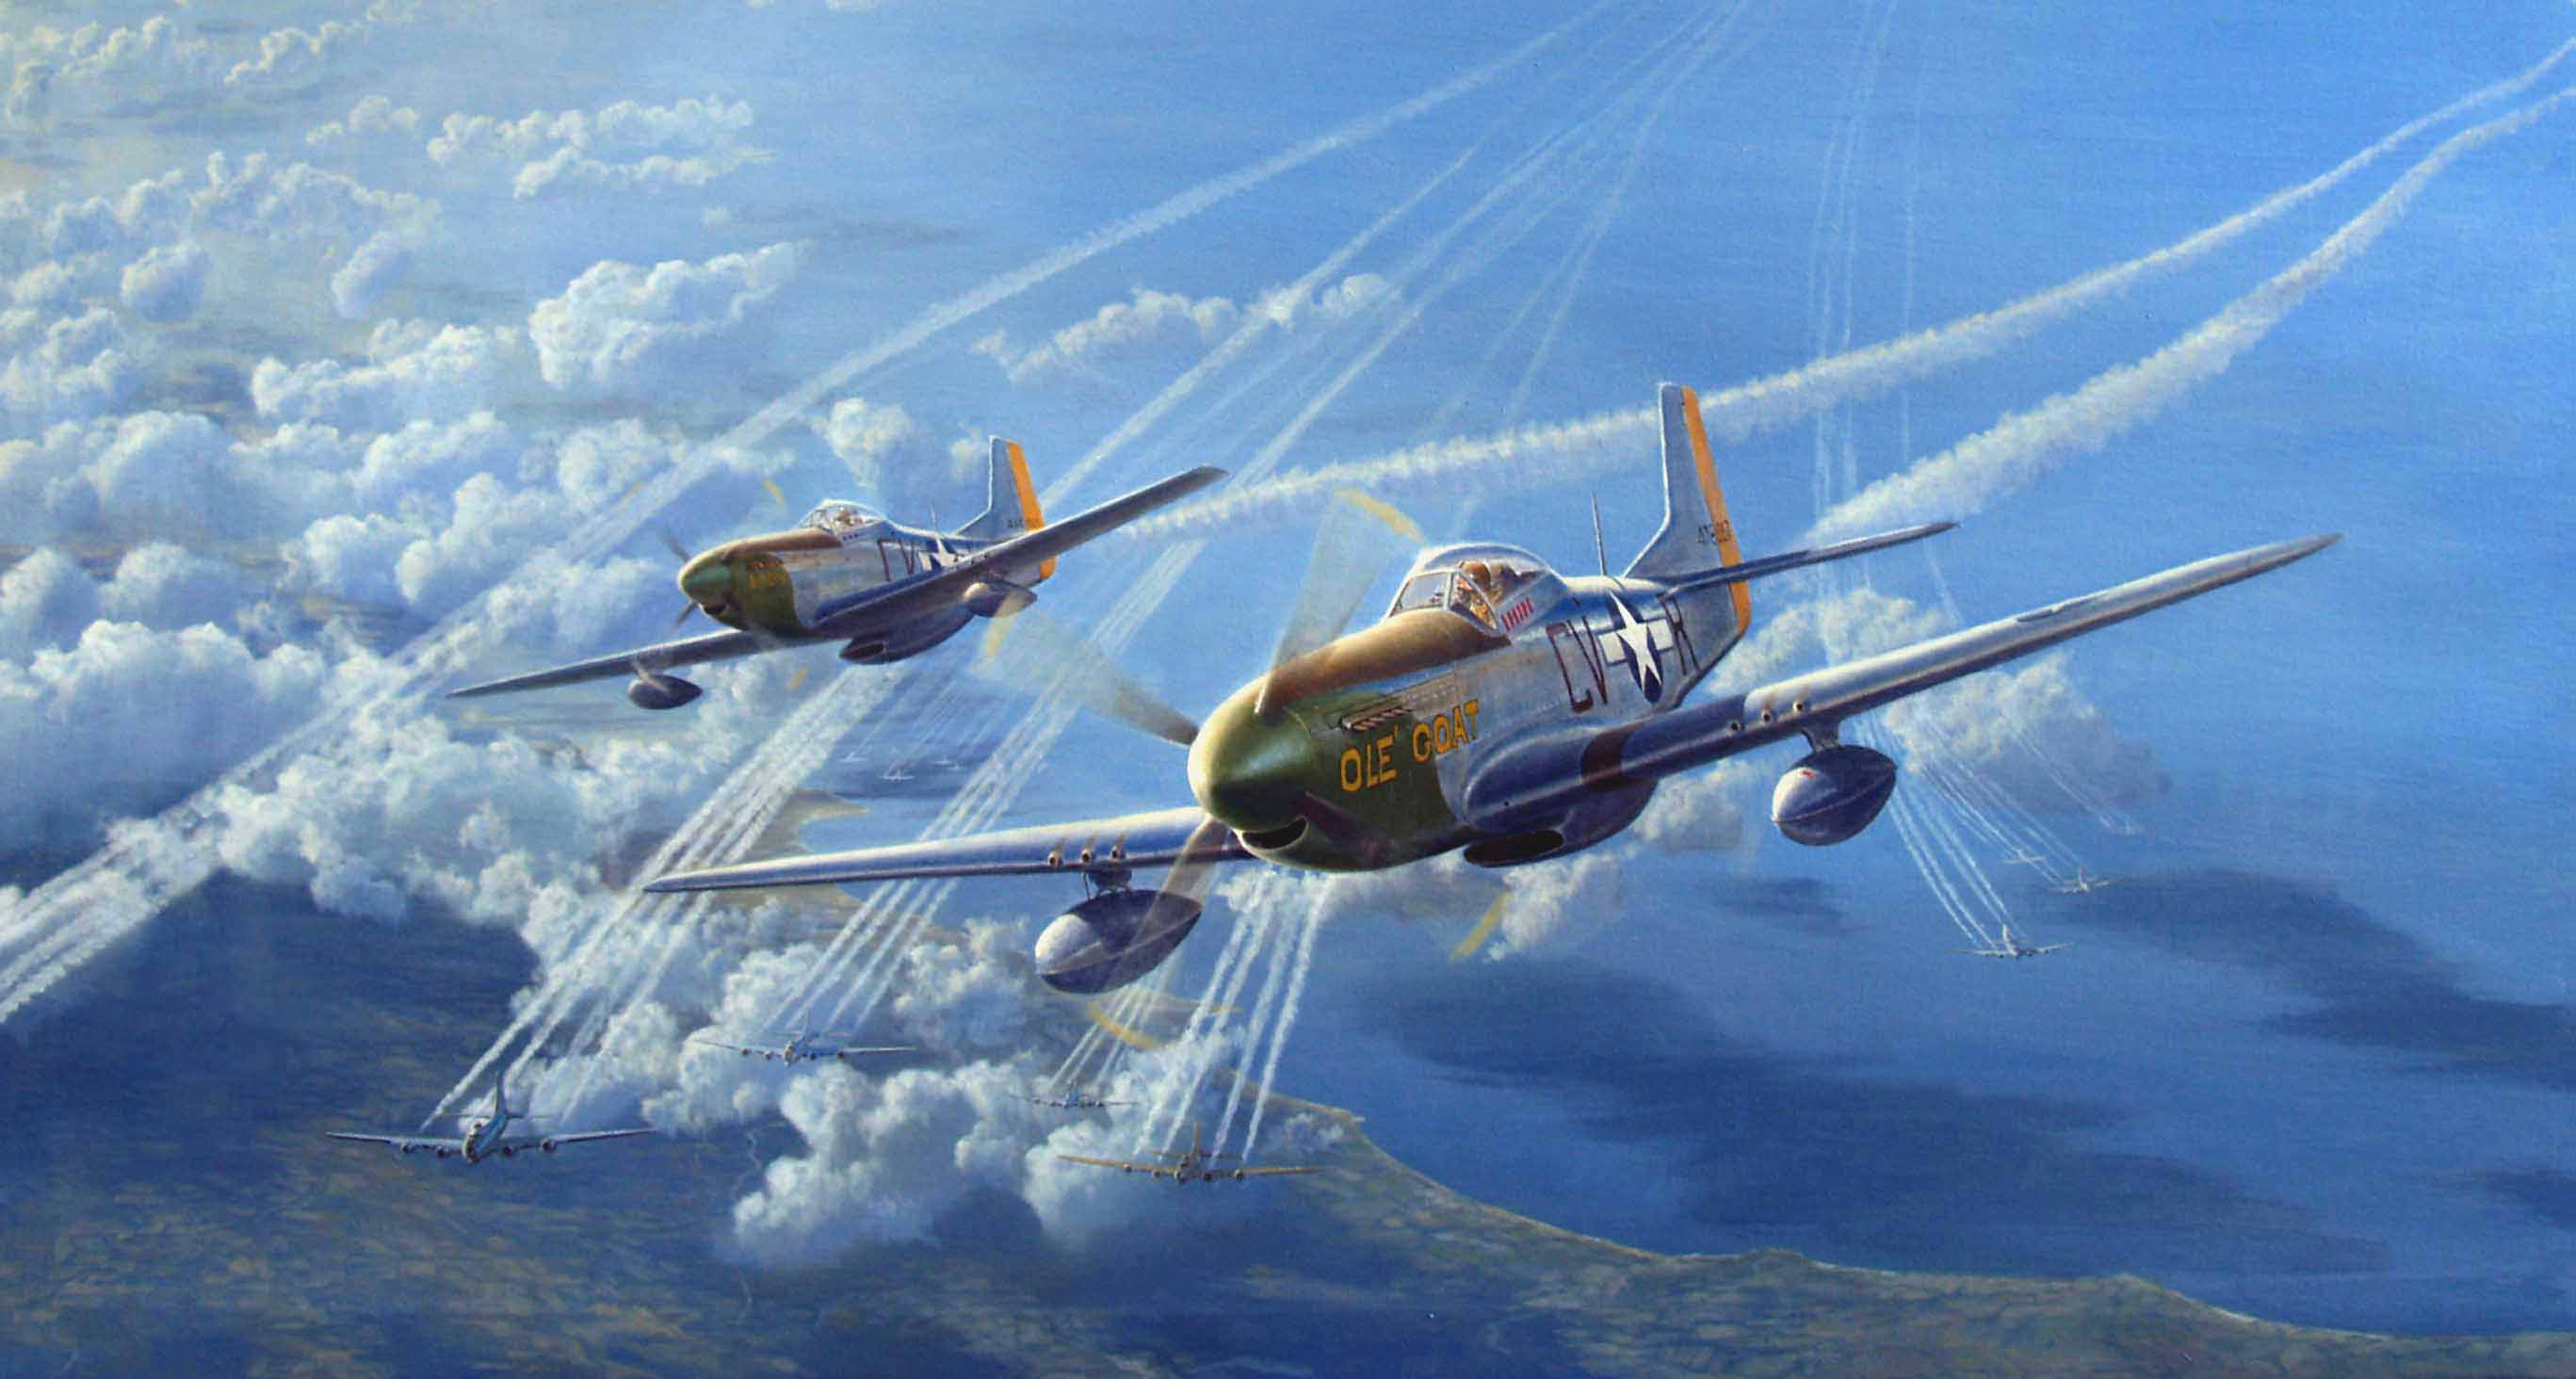 13 North American P-51 Mustang Wallpapers | North American P-51 ...